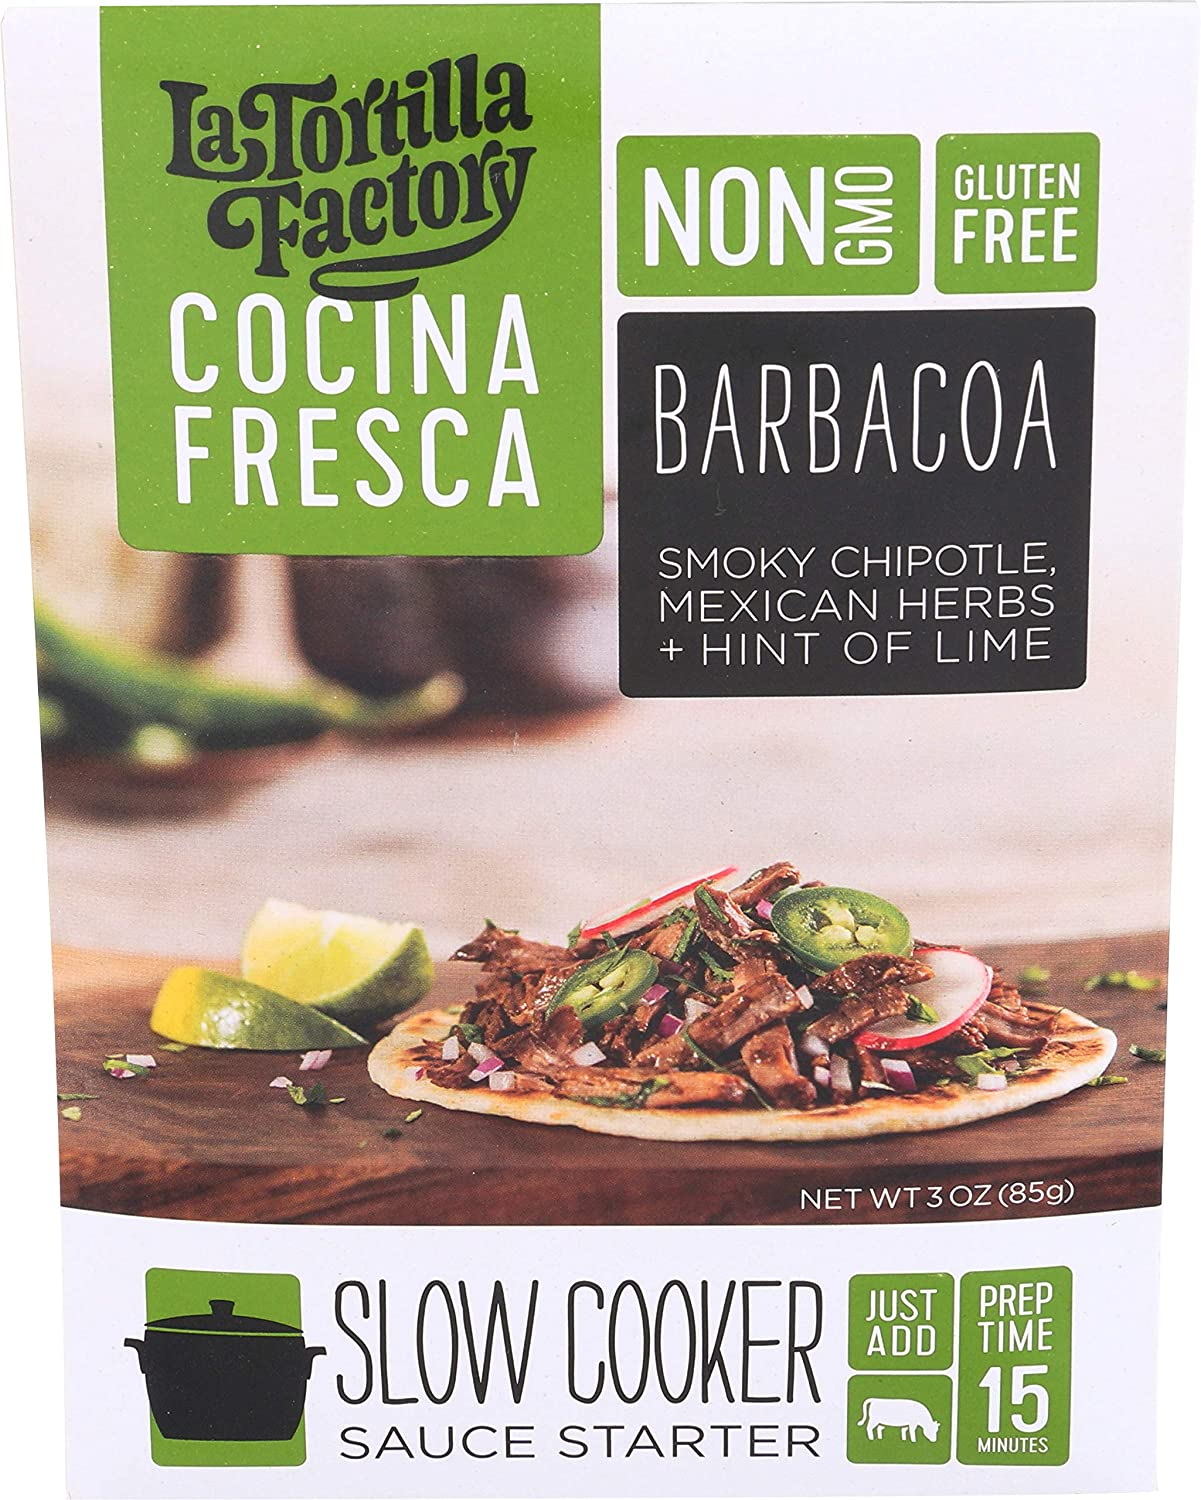 Amazon.com : La Tortilla Factory Cocina Fresca Barbacoa Slow Cooker Sauce Starter, 3oz (Pack of 3) : Grocery & Gourmet Food